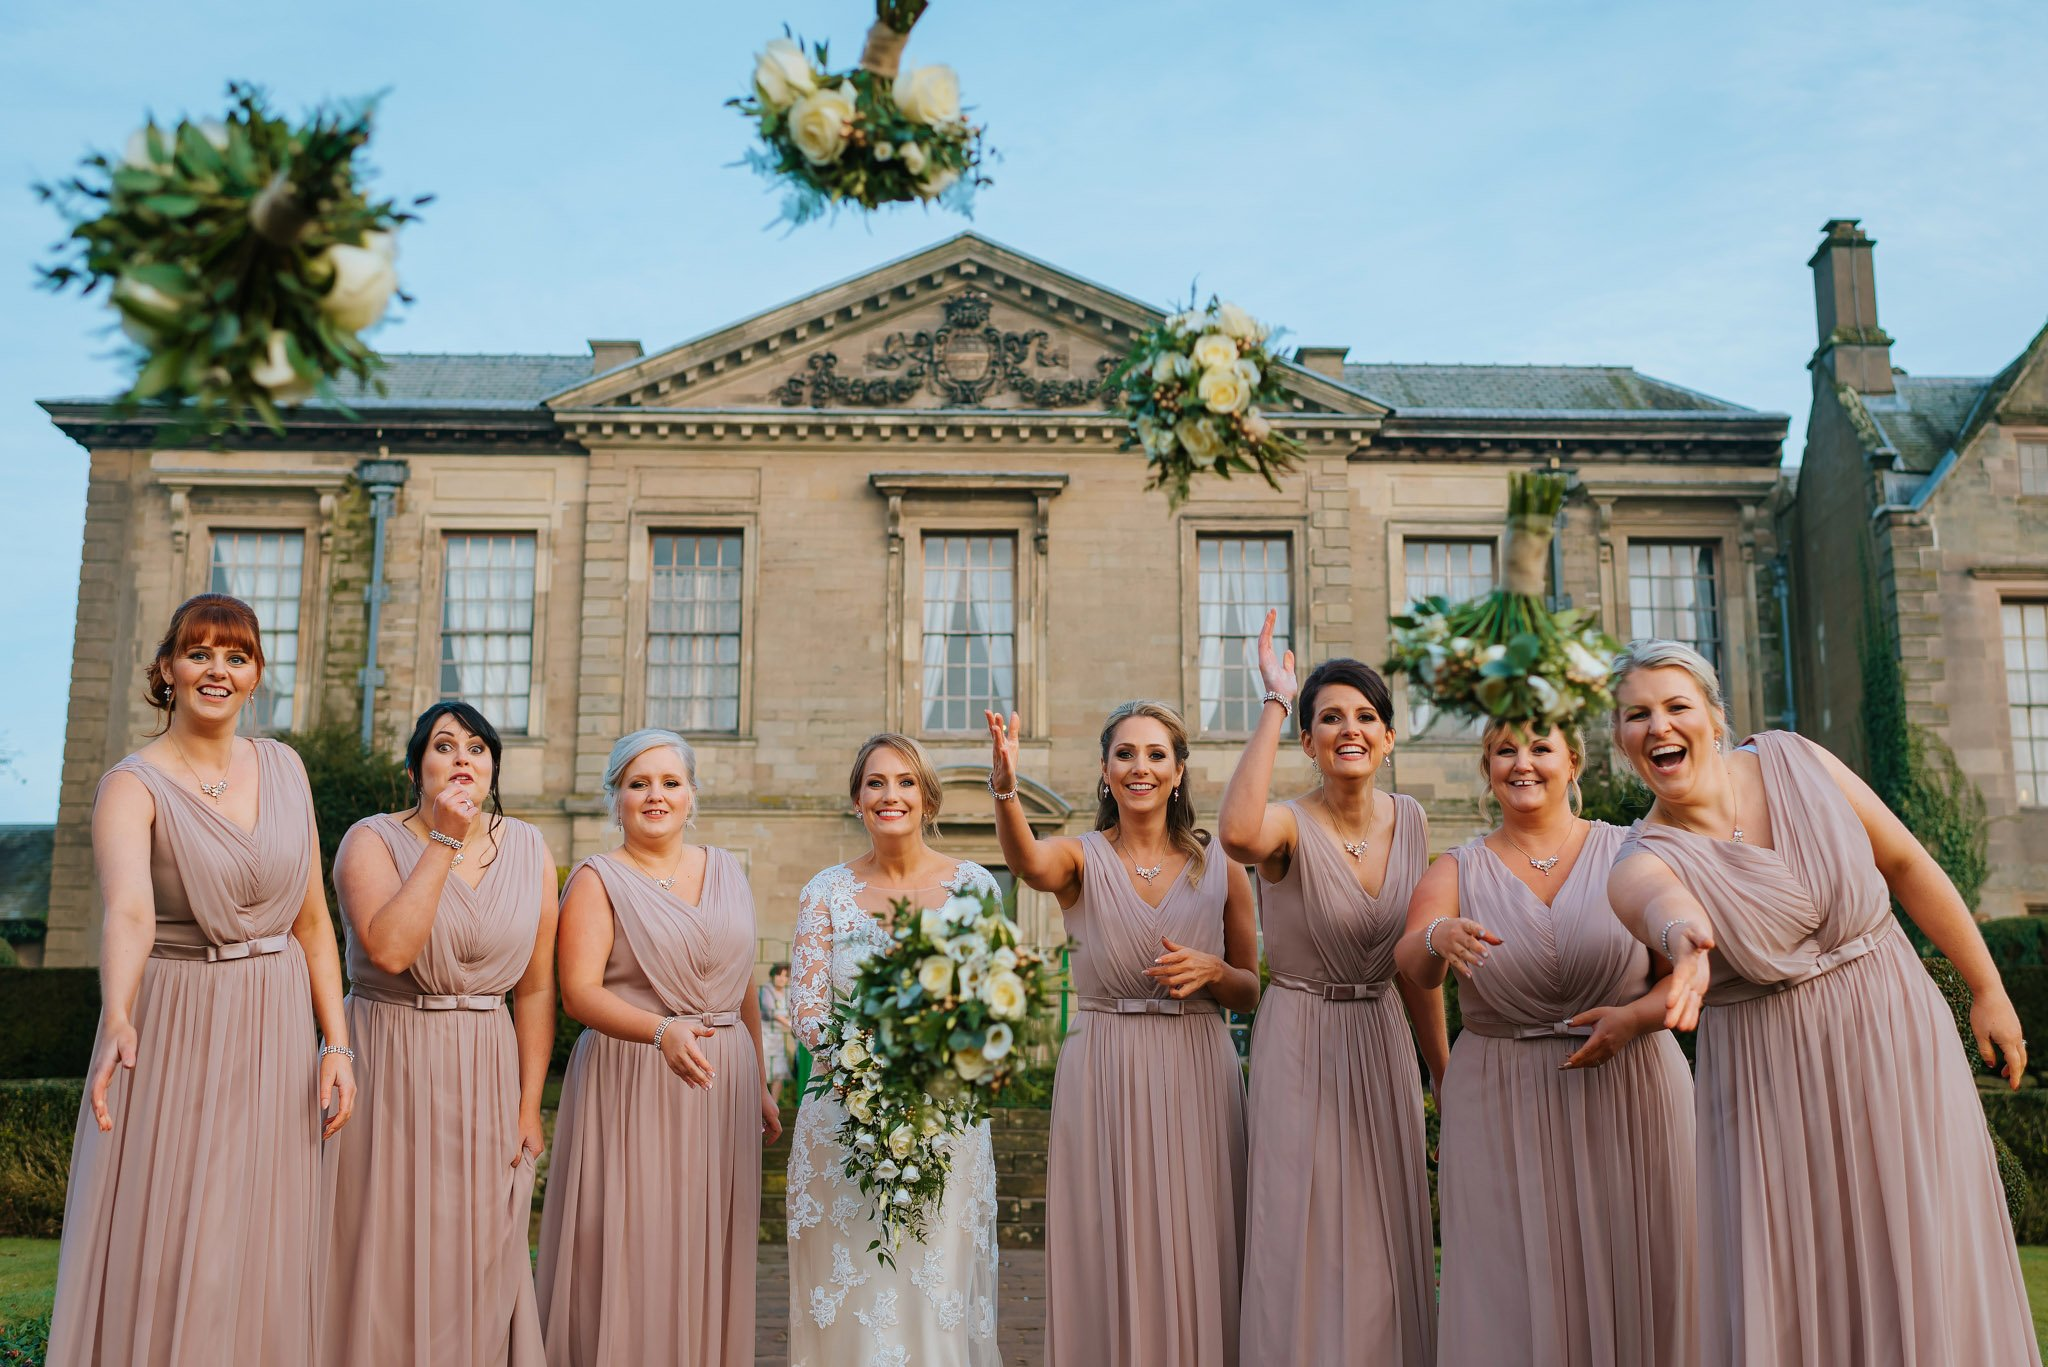 Coombe Abbey wedding in Coventry, Warwickshire - Sam + Matt 27